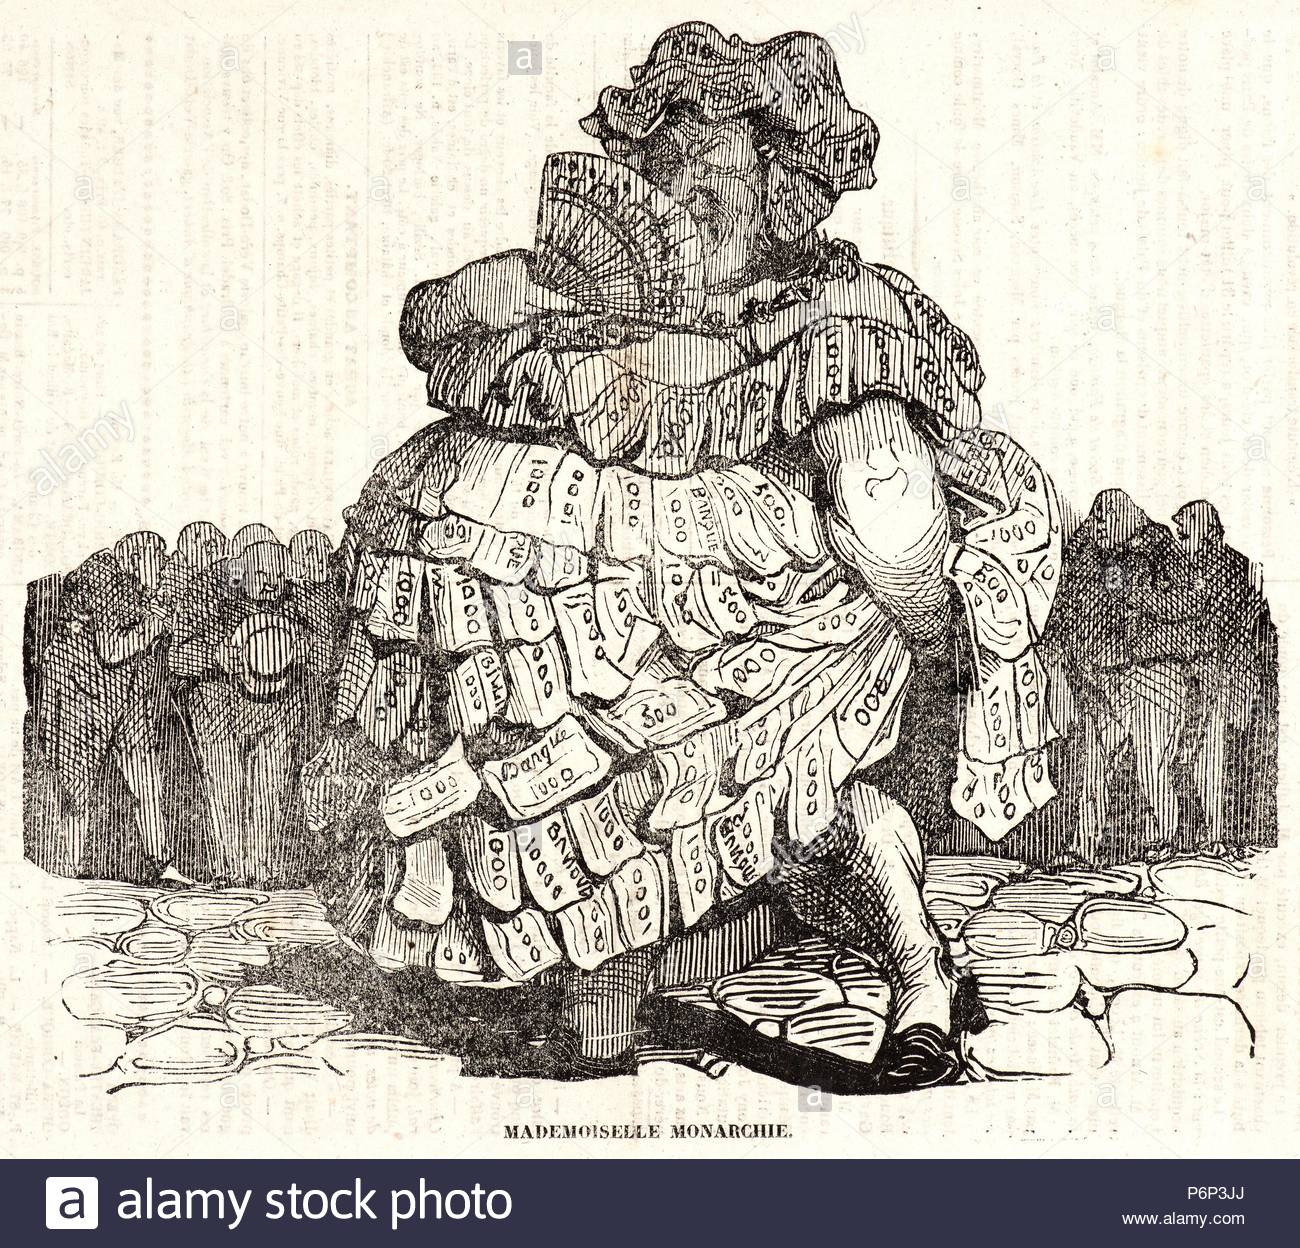 Honoré Daumier (French, 1808 - 1879). Mademoiselle Monarchie, 1834. Wood  engraving on newsprint paper. Image: 180 mm x 212 mm (7.09 in. x 8.35 in.).